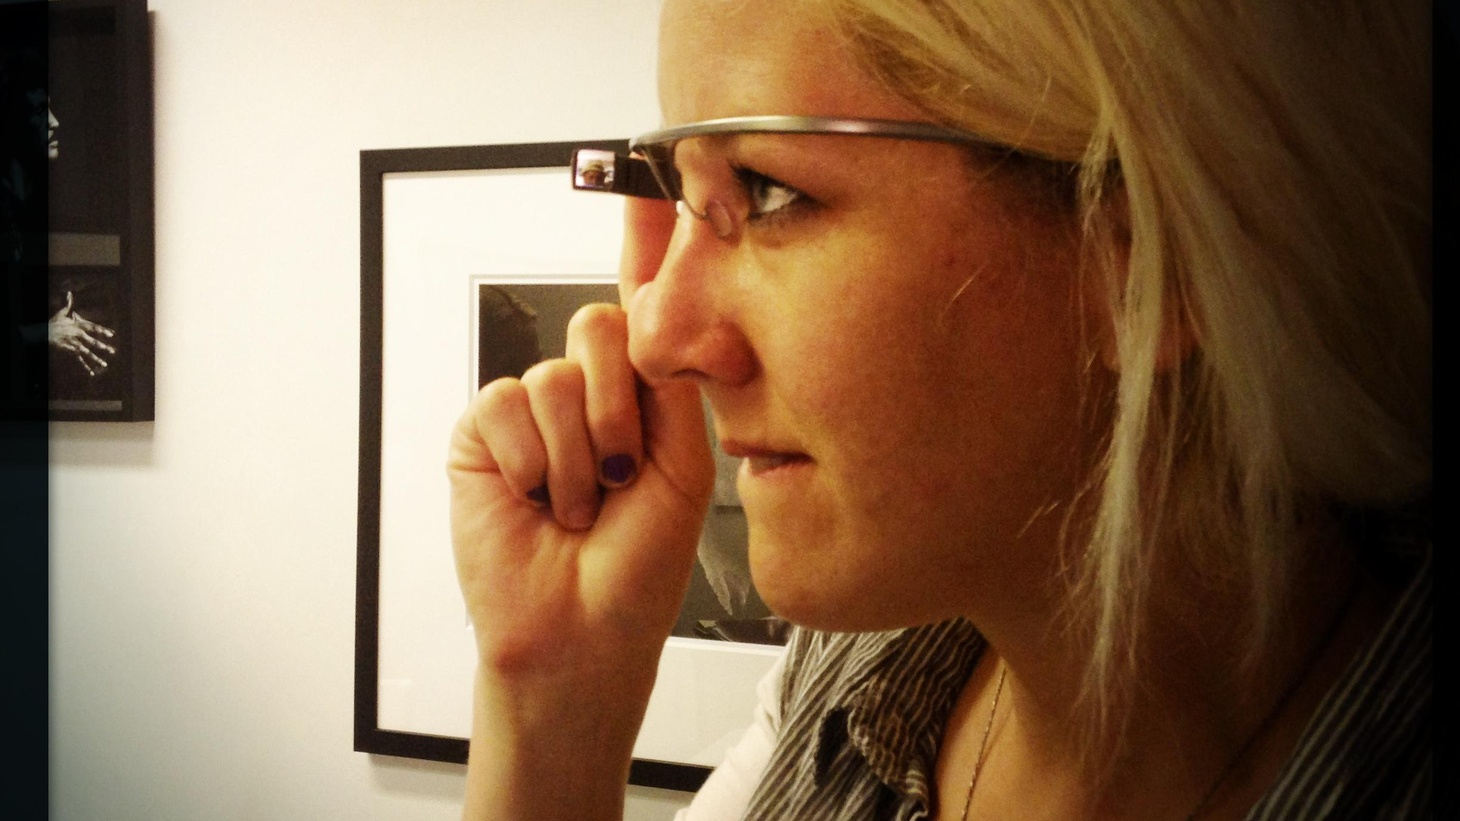 Betsy Moyer and Bianca Bosker try out Google Glass and share the experience. Is Glass a window into our Cyborgian future? Or a gizmo in search of a reason to exist?